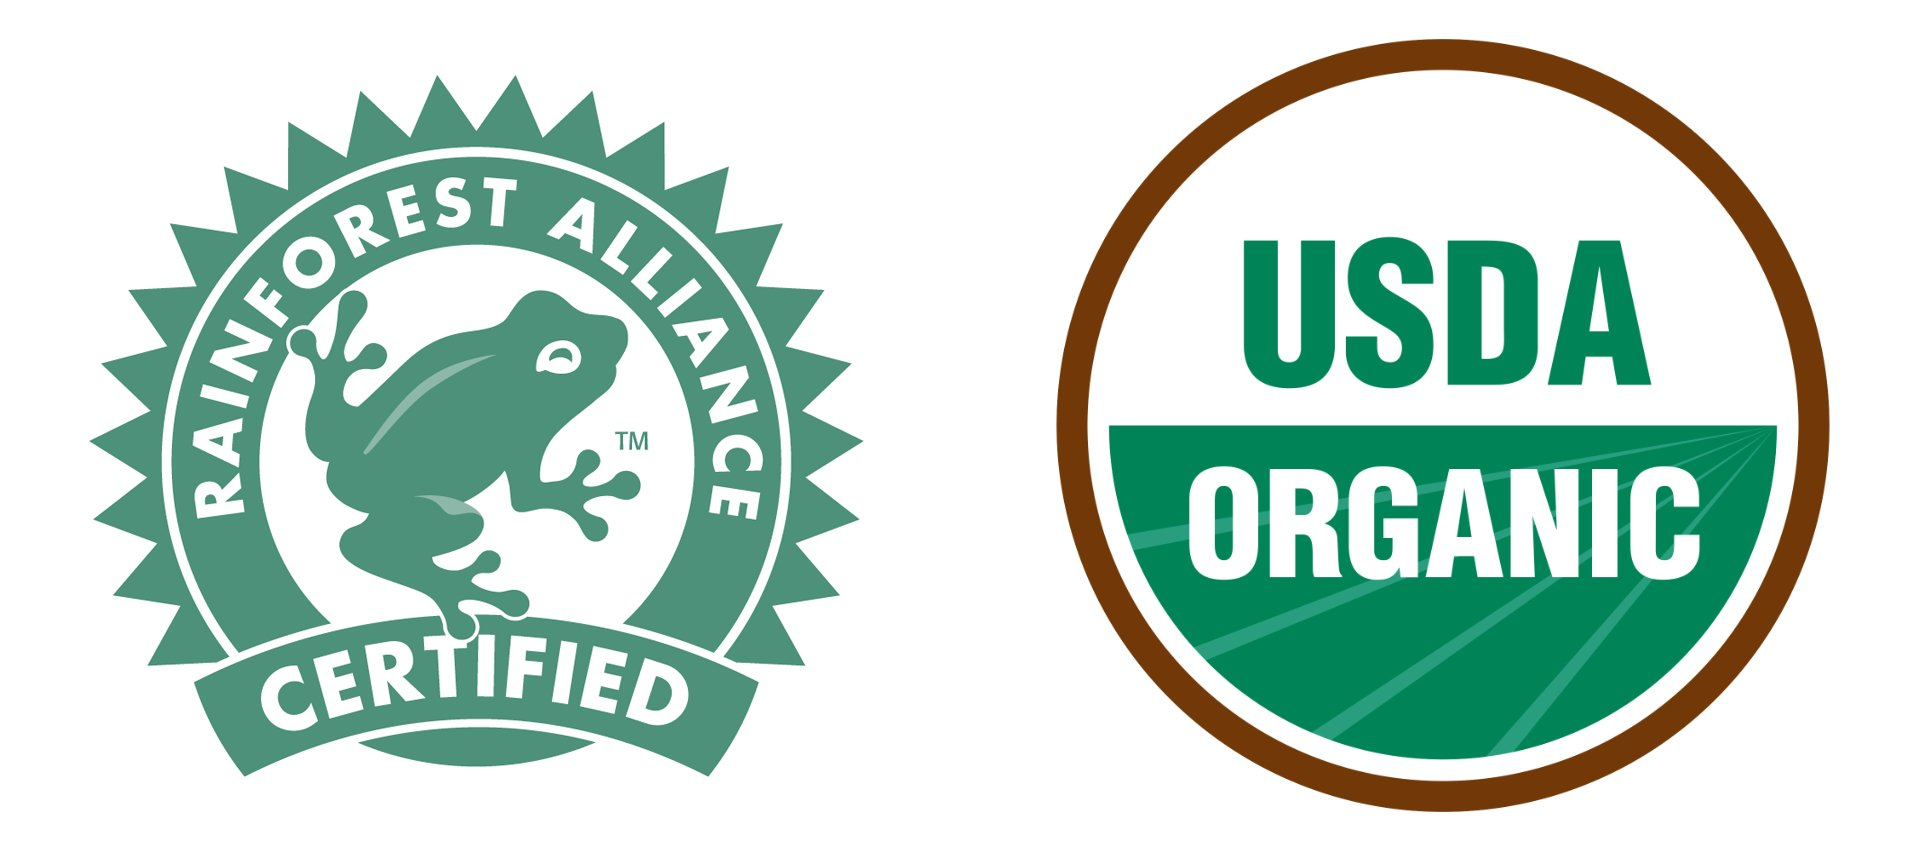 rainforest alliance label and USDA organic label